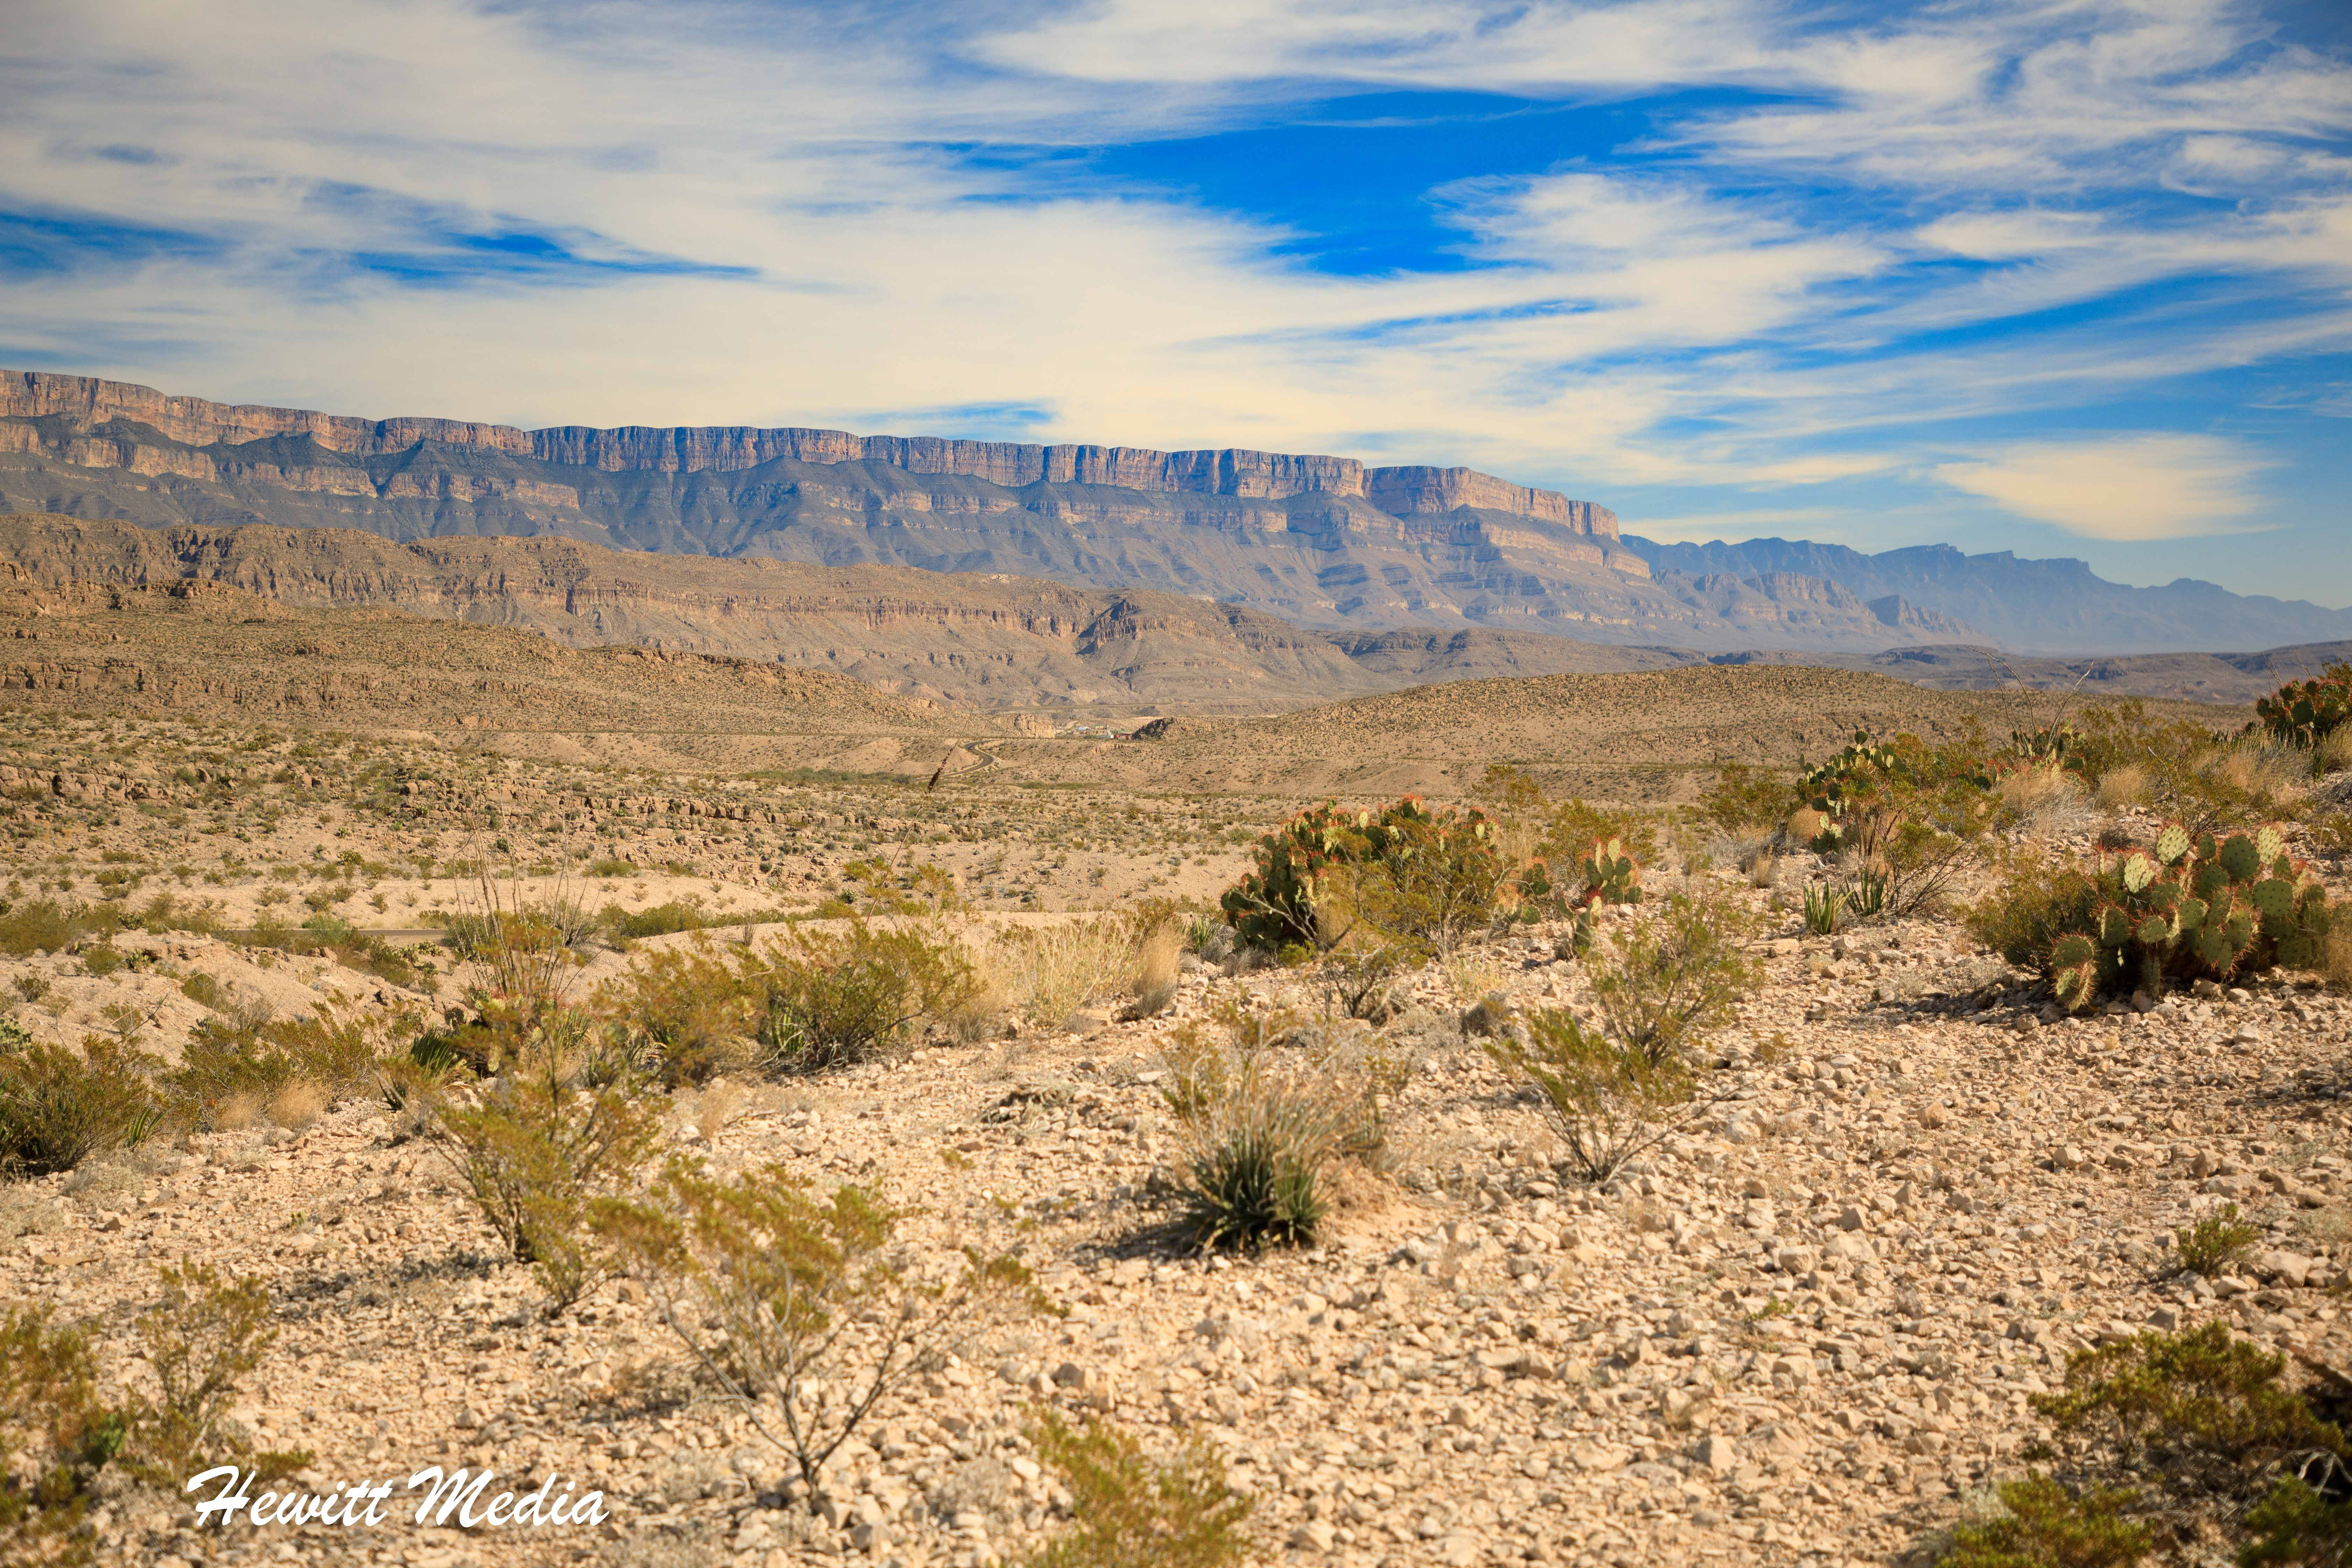 The beautiful Big Bend National Park